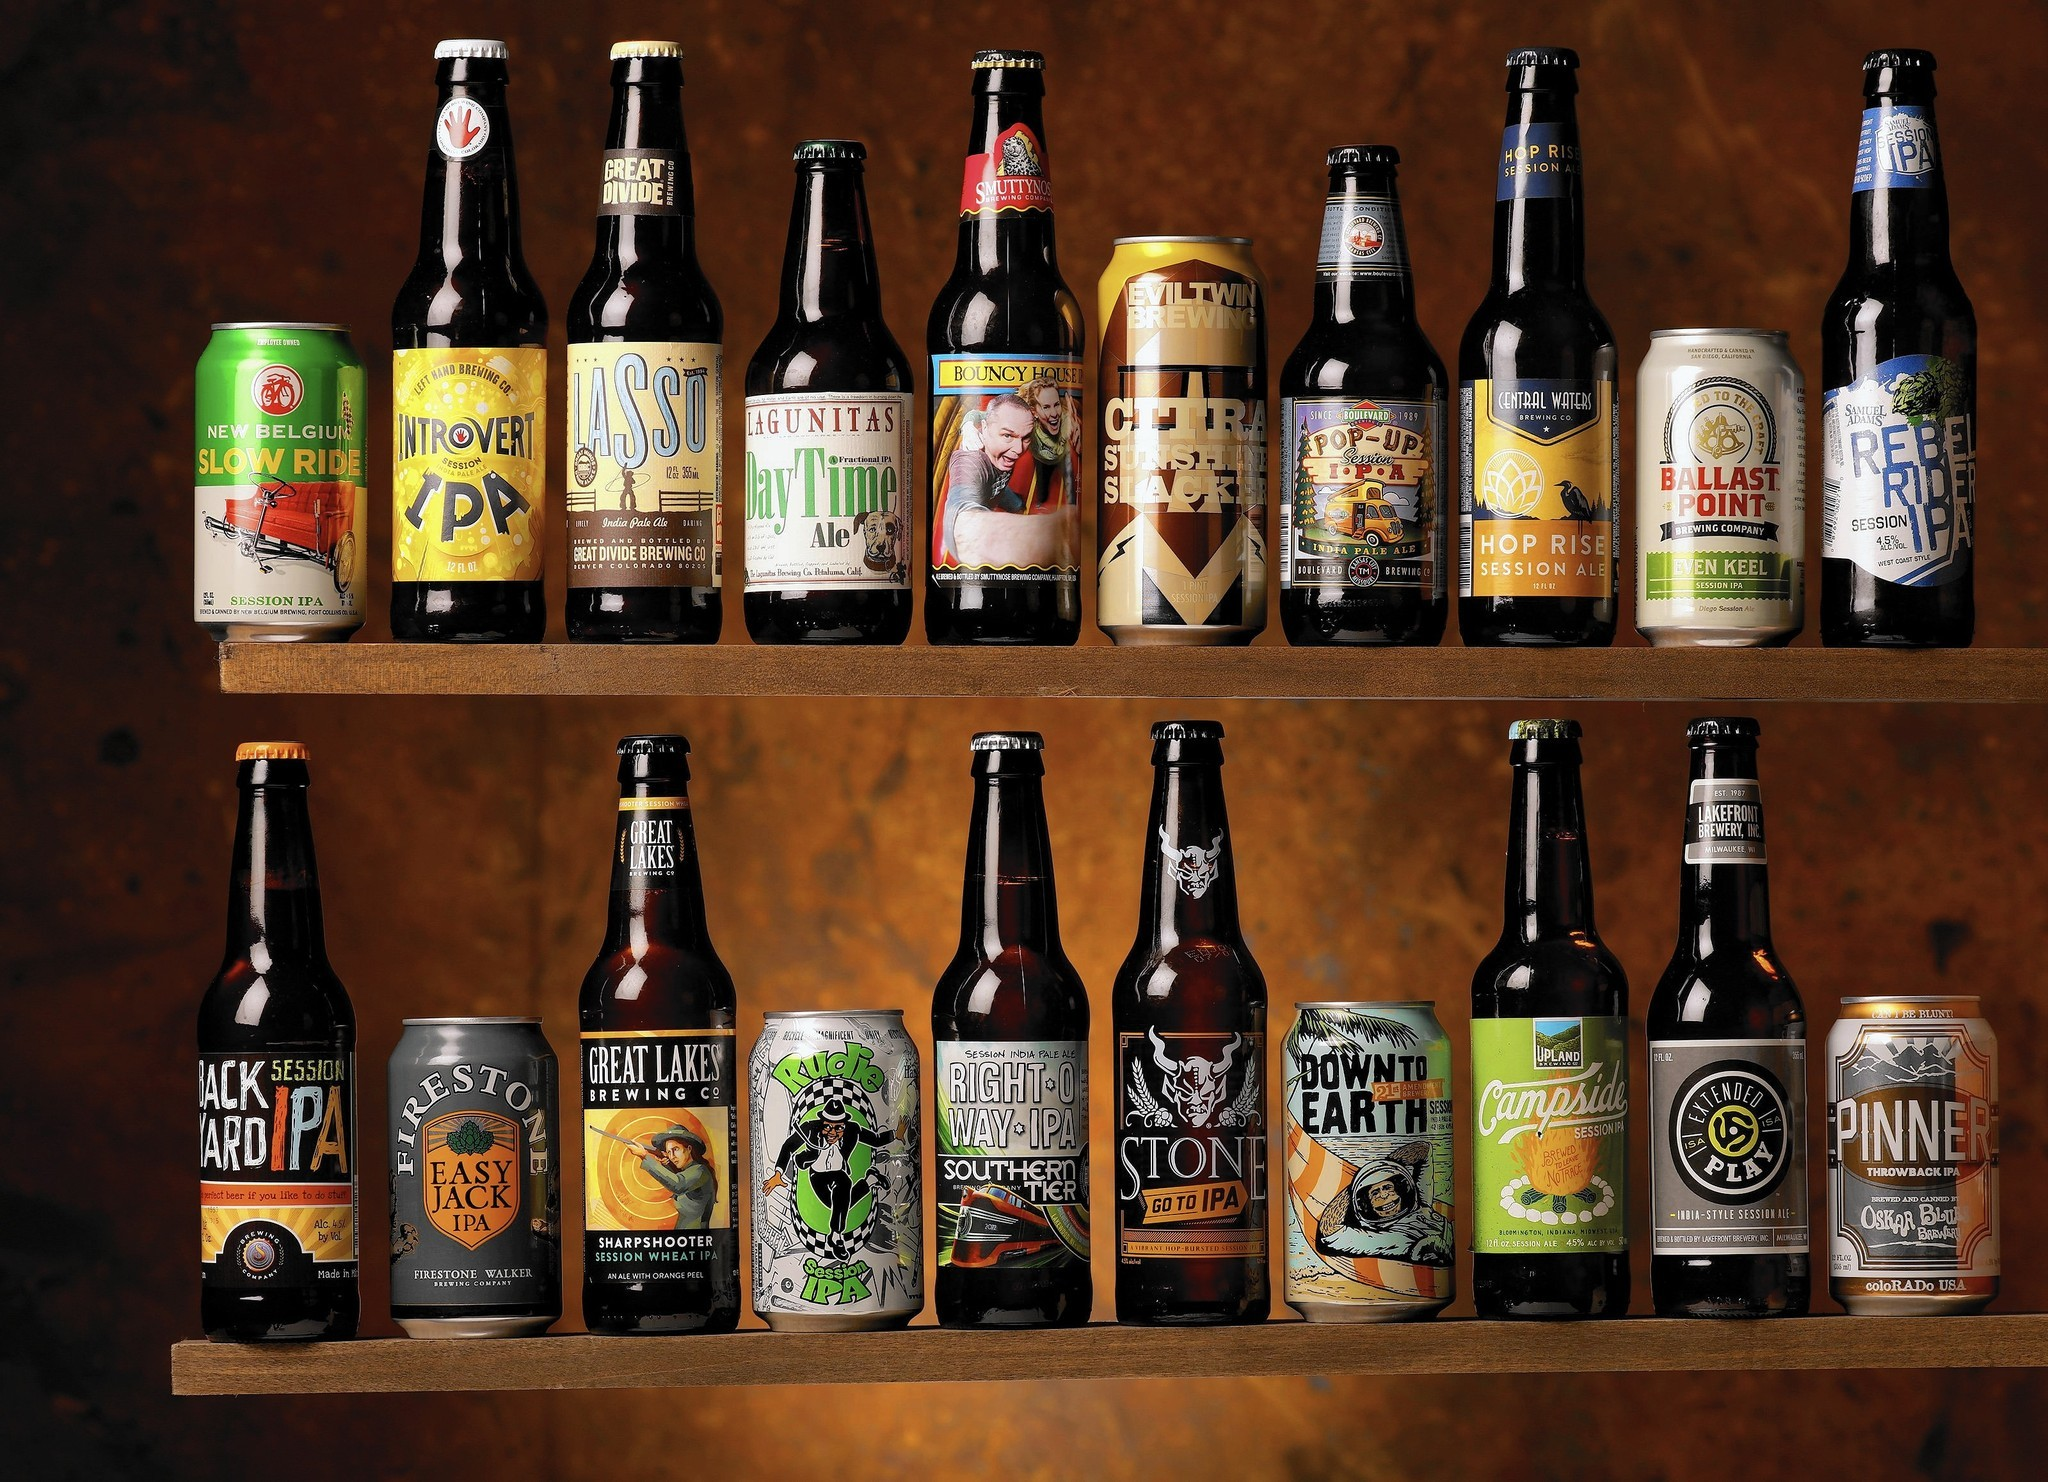 22 session IPAs ranked!